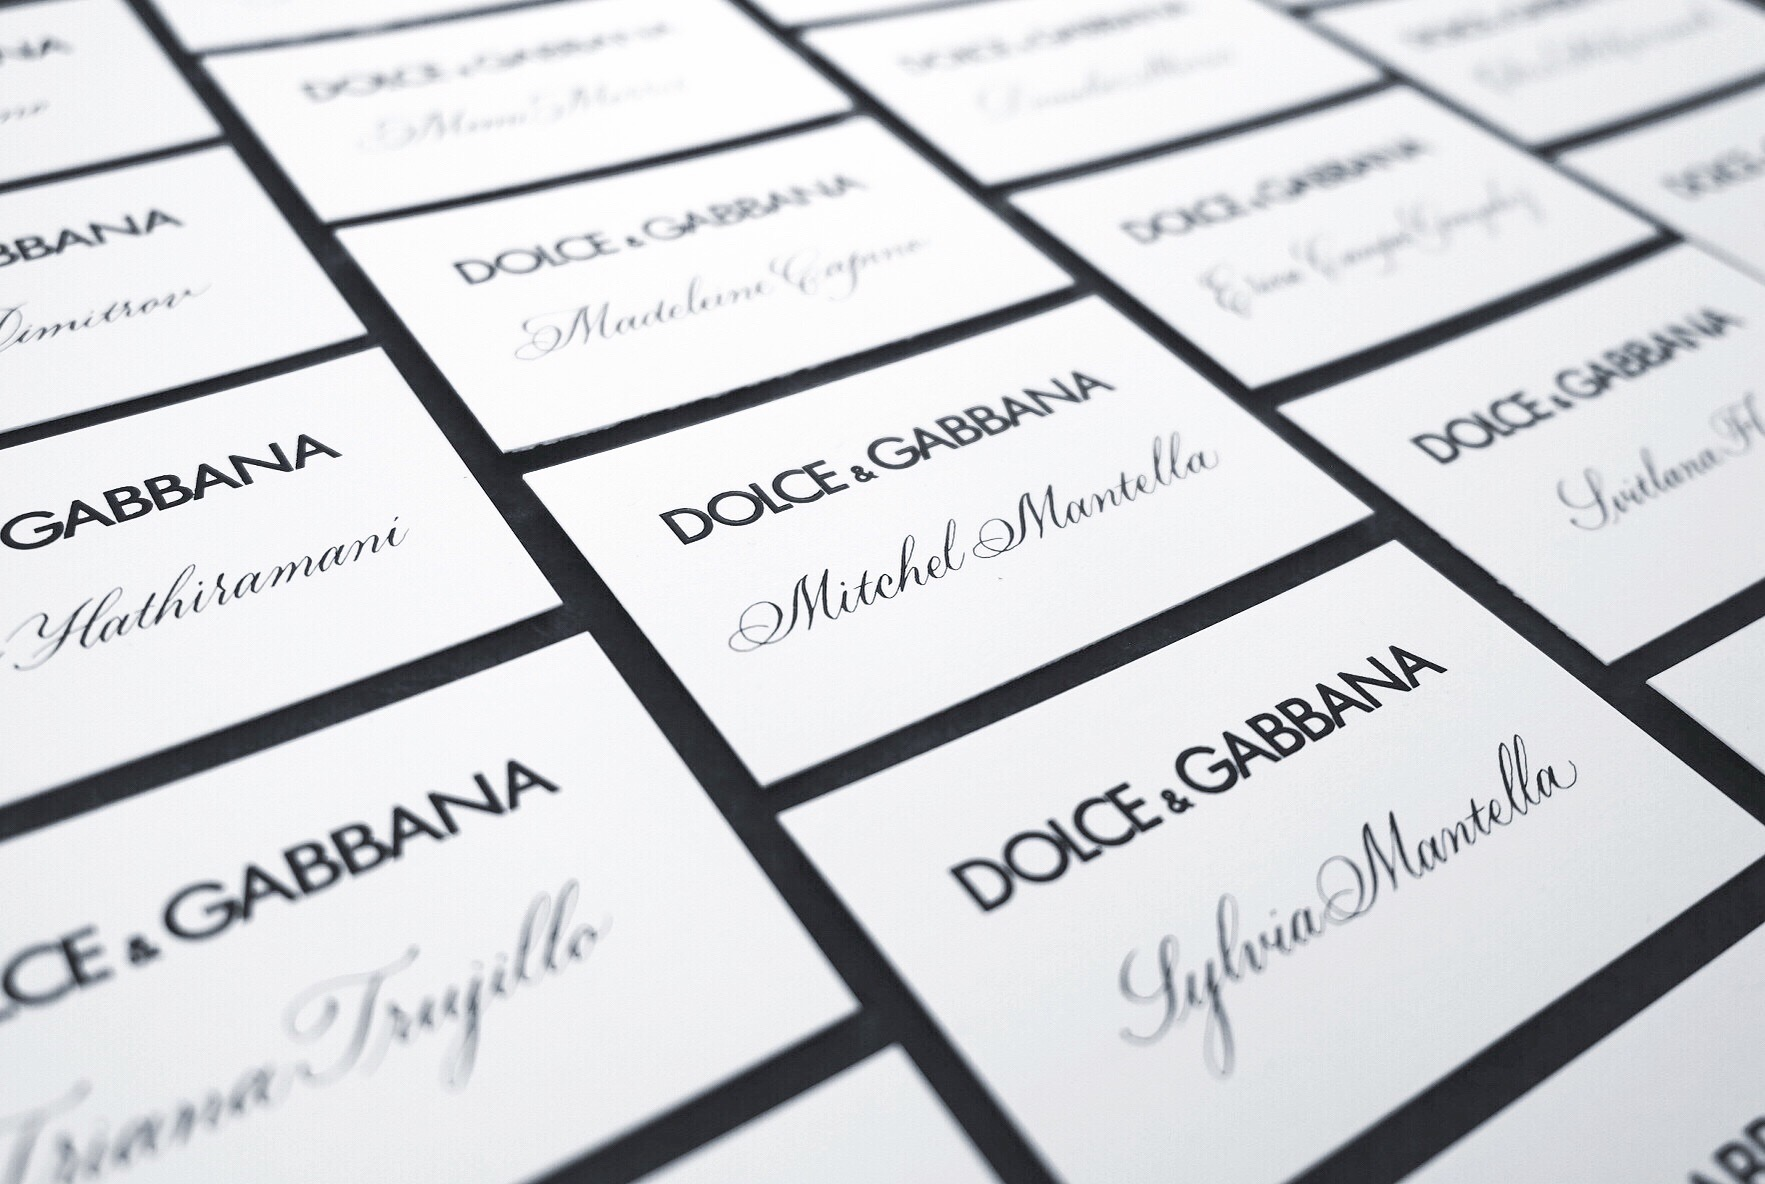 Dolce & Gabbana place cards by Chavelli | www.chavelli.com